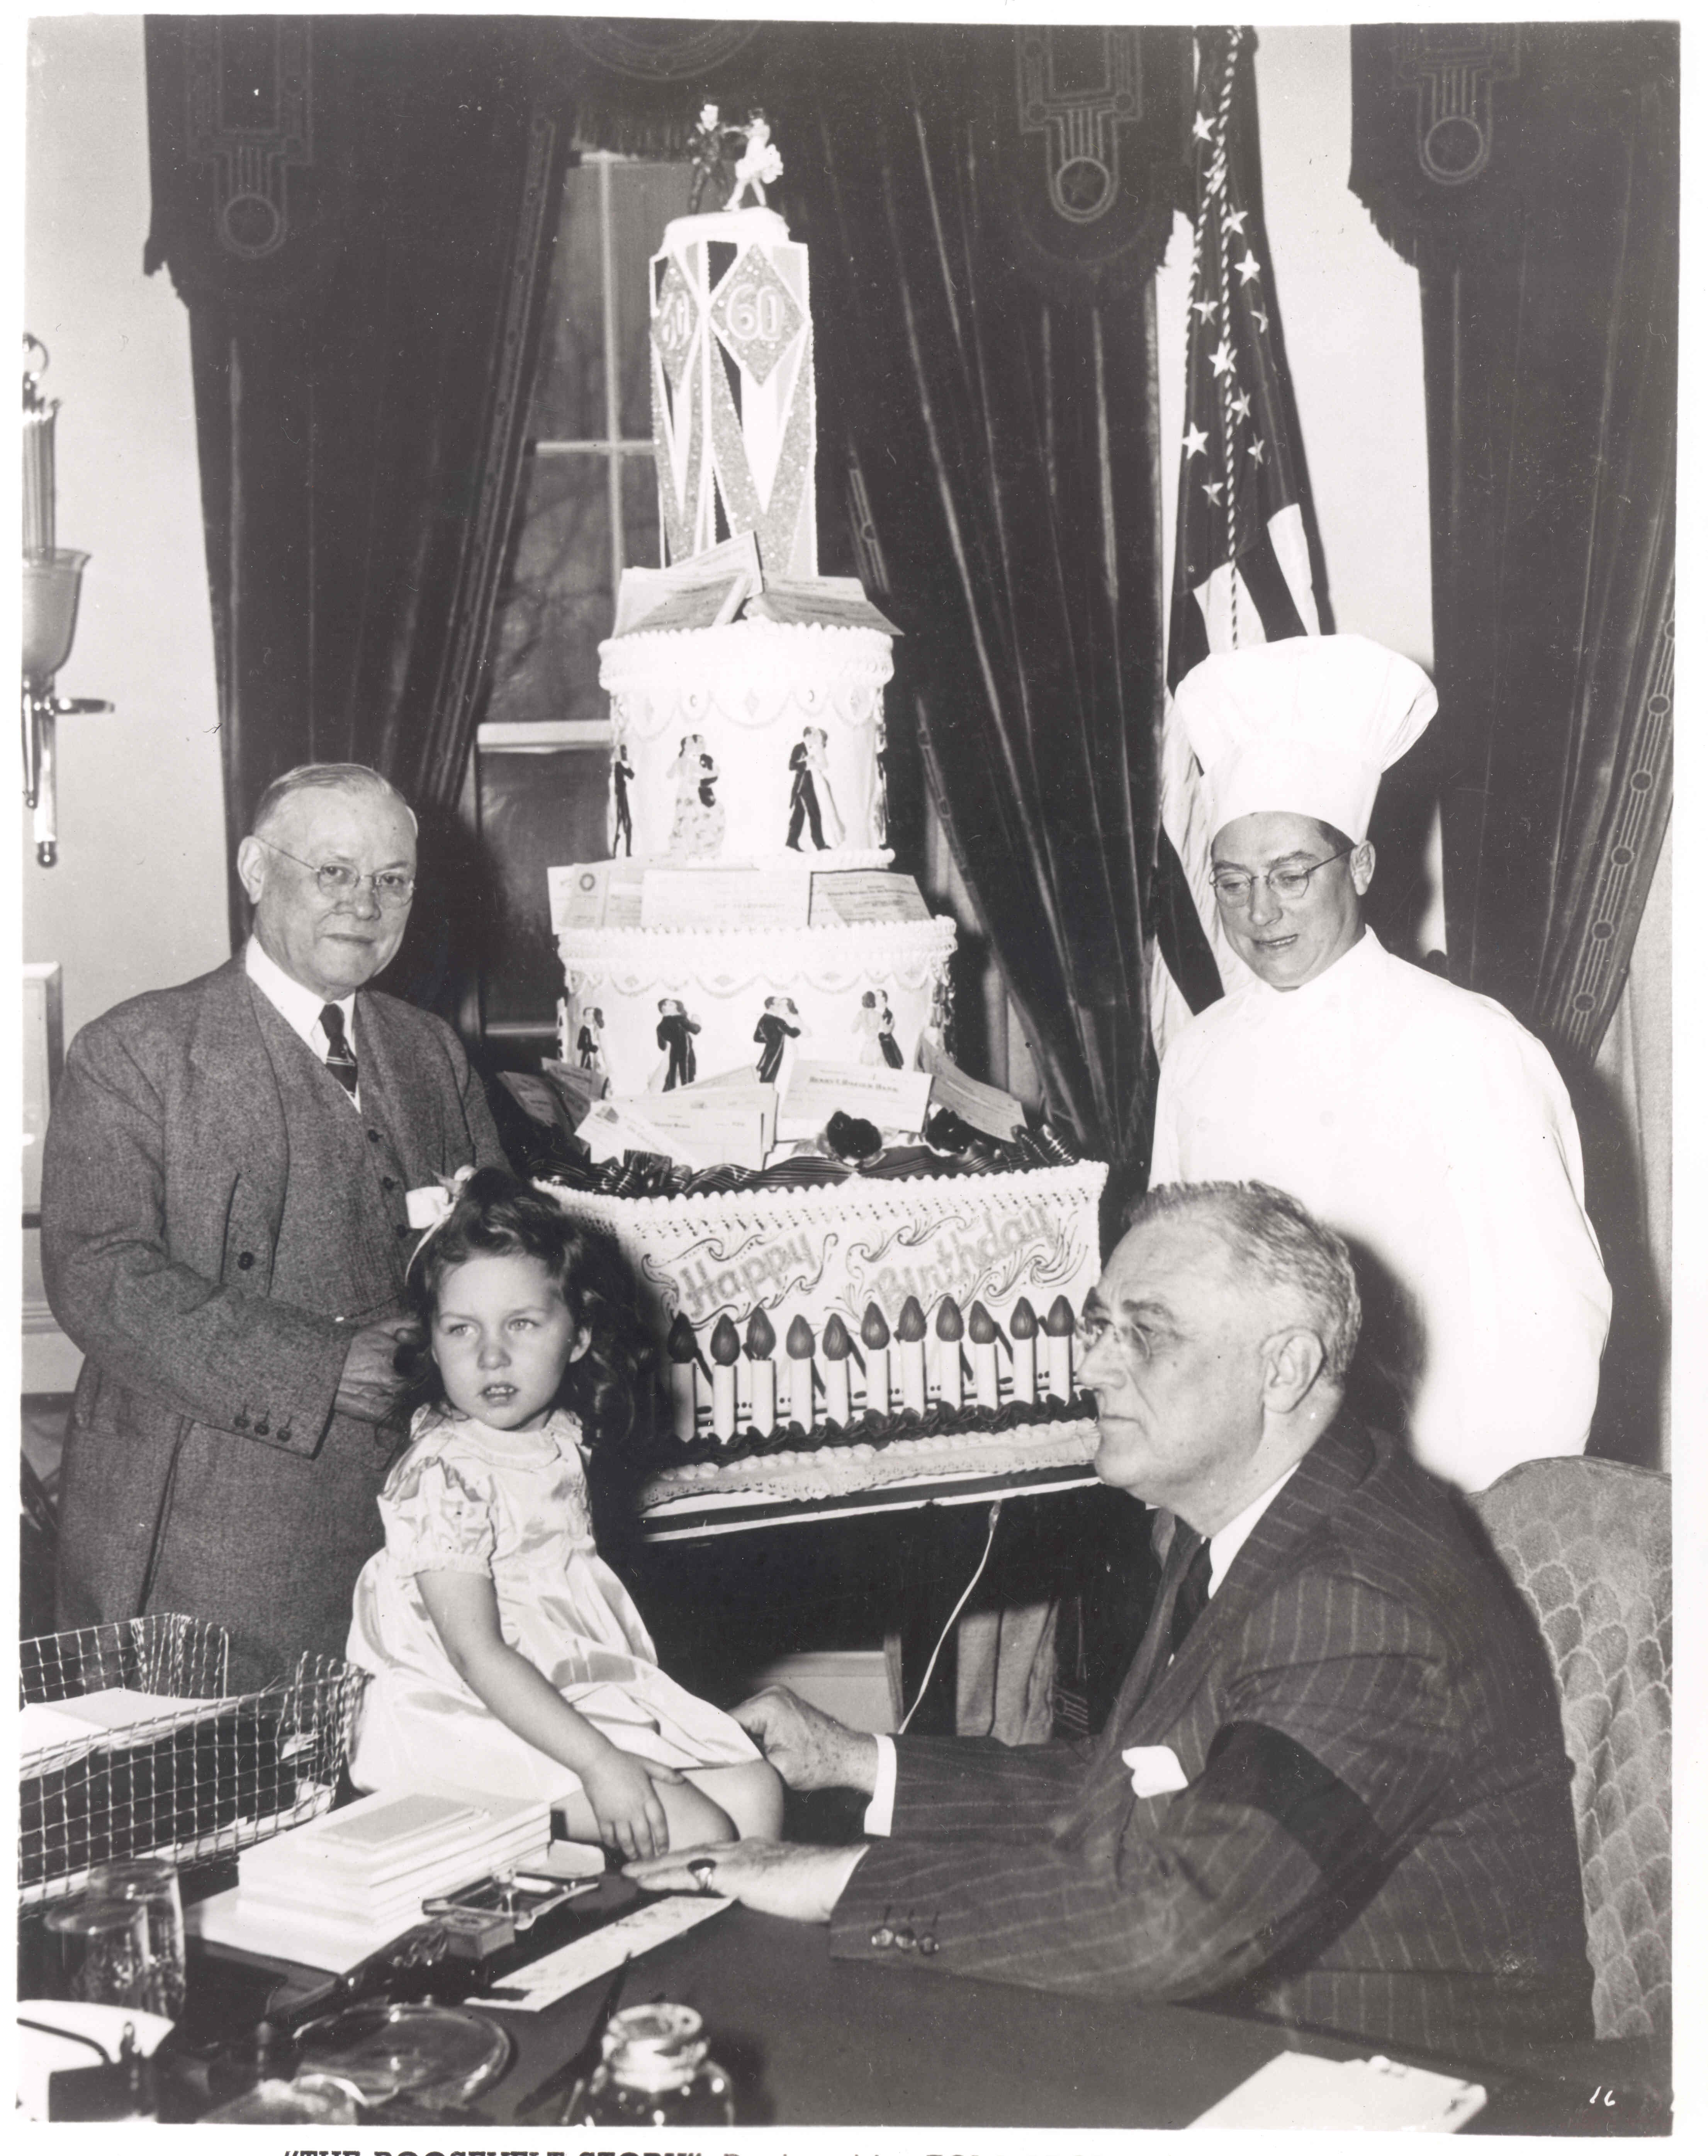 fdr in roosevelt history fdr pictured receiving a birthday cake decorated checks for the national foundation for infantile paralysis